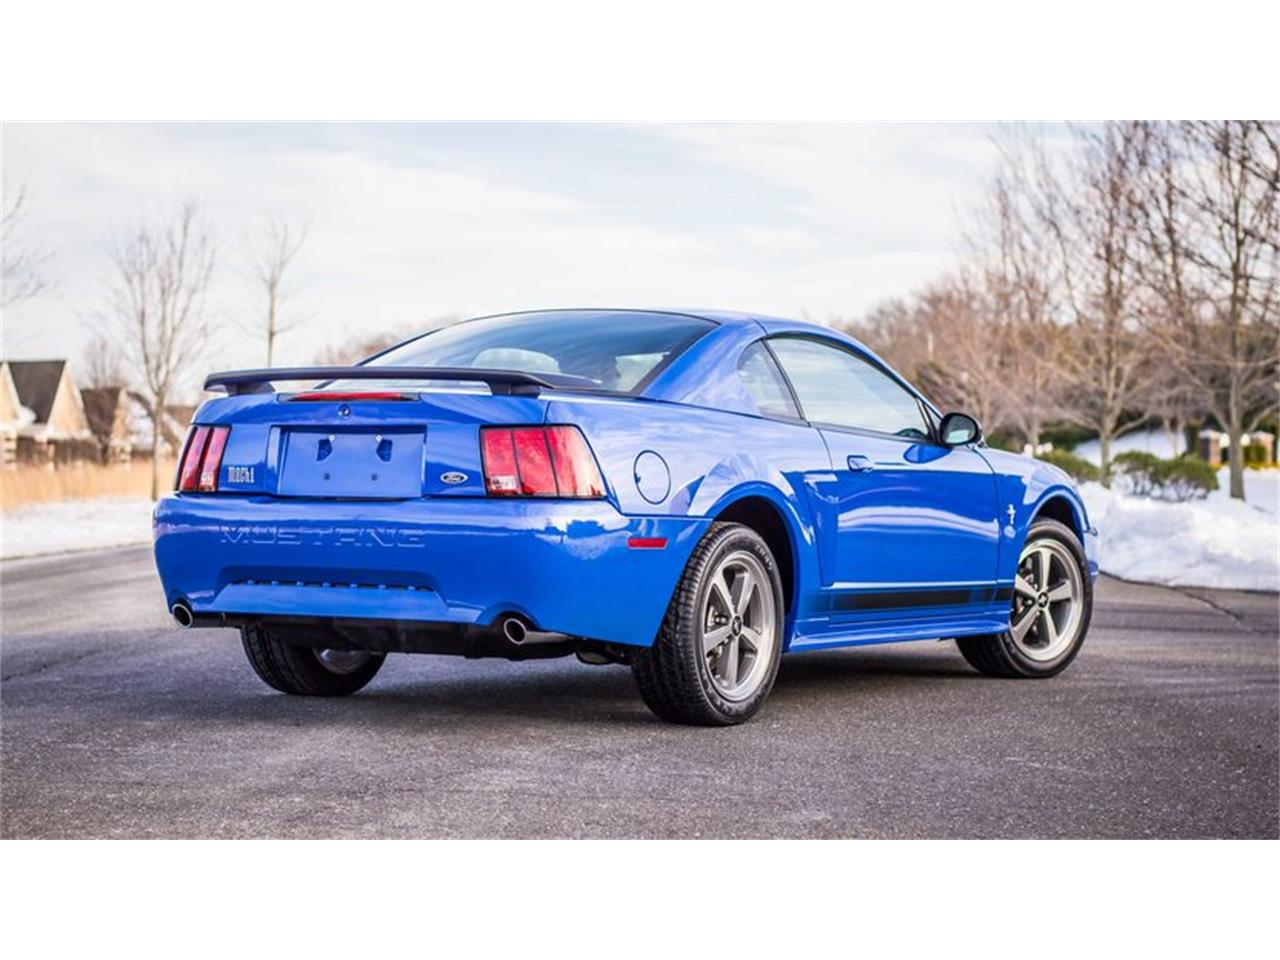 2003 Ford Mustang Mach 1 For Sale Classiccars Com Cc 969193